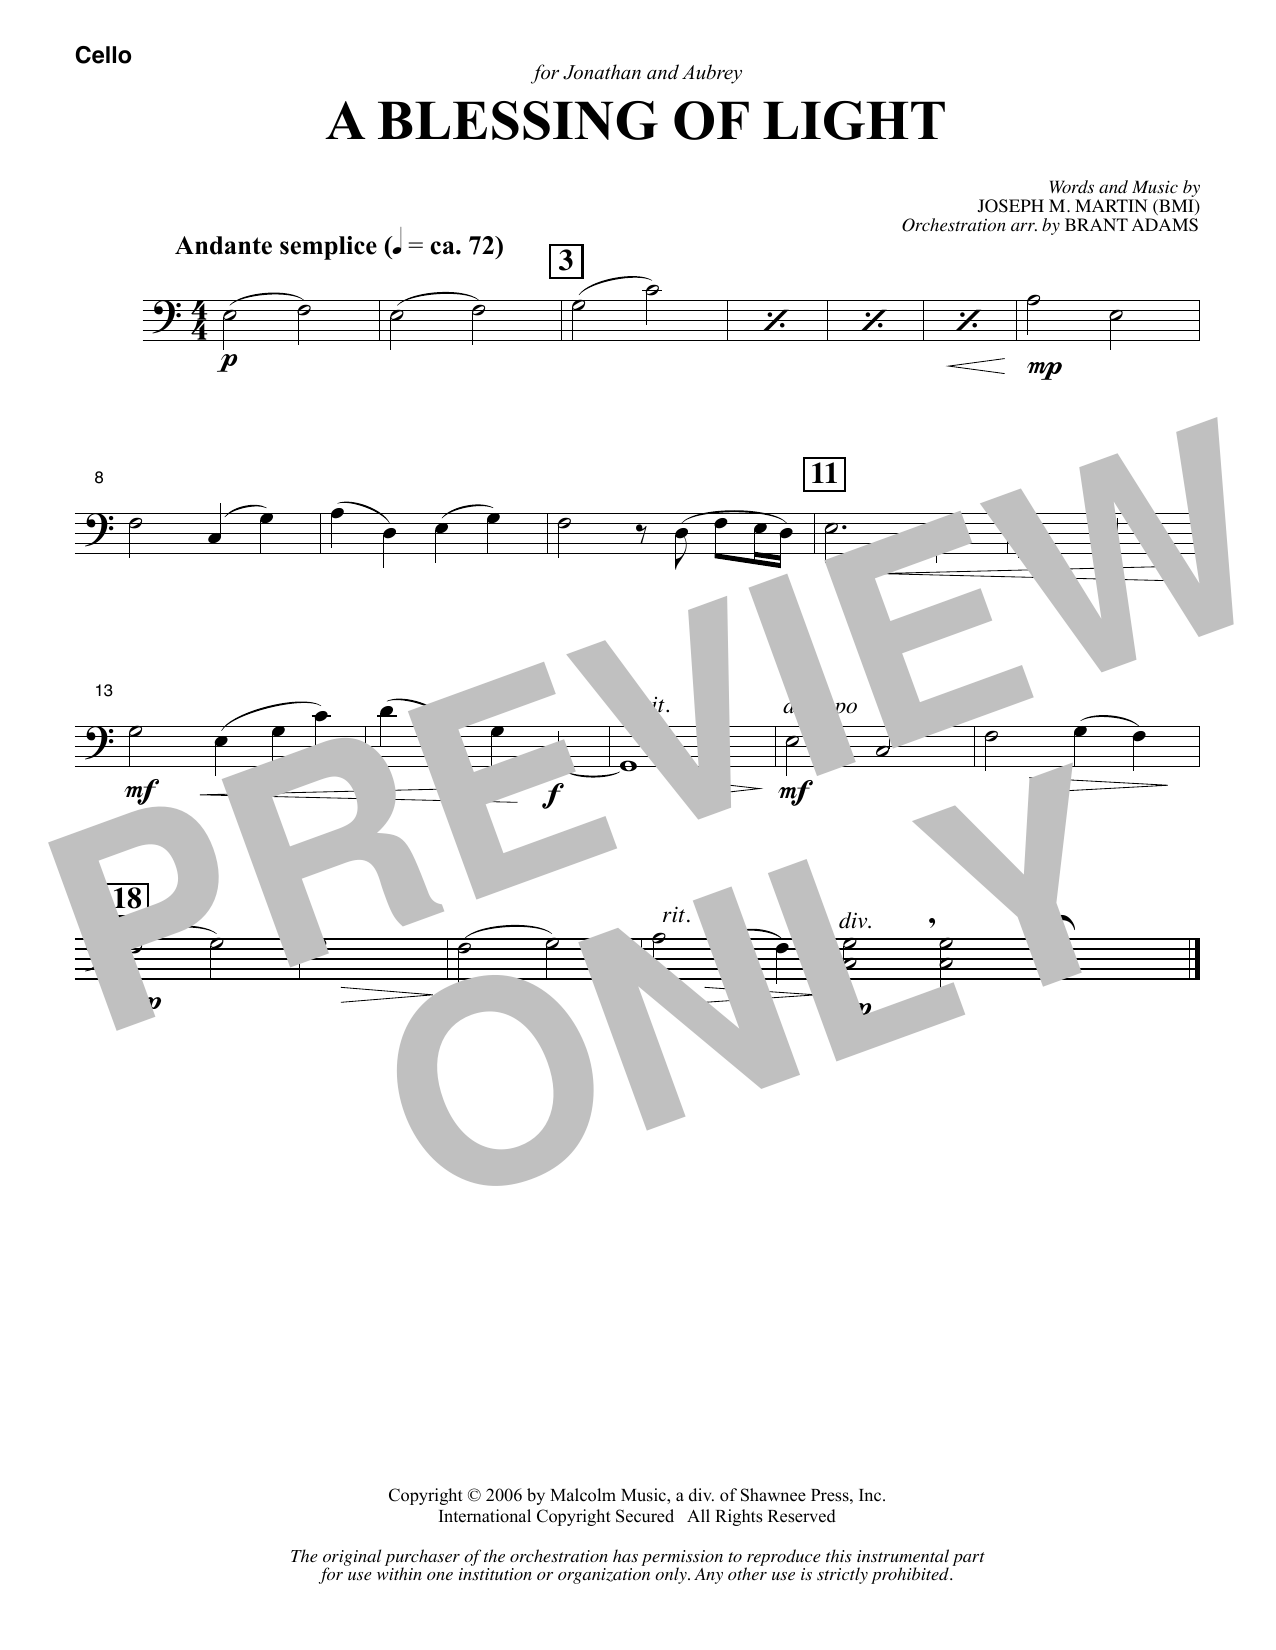 Joseph M. Martin A Blessing of Light - Cello sheet music notes and chords. Download Printable PDF.